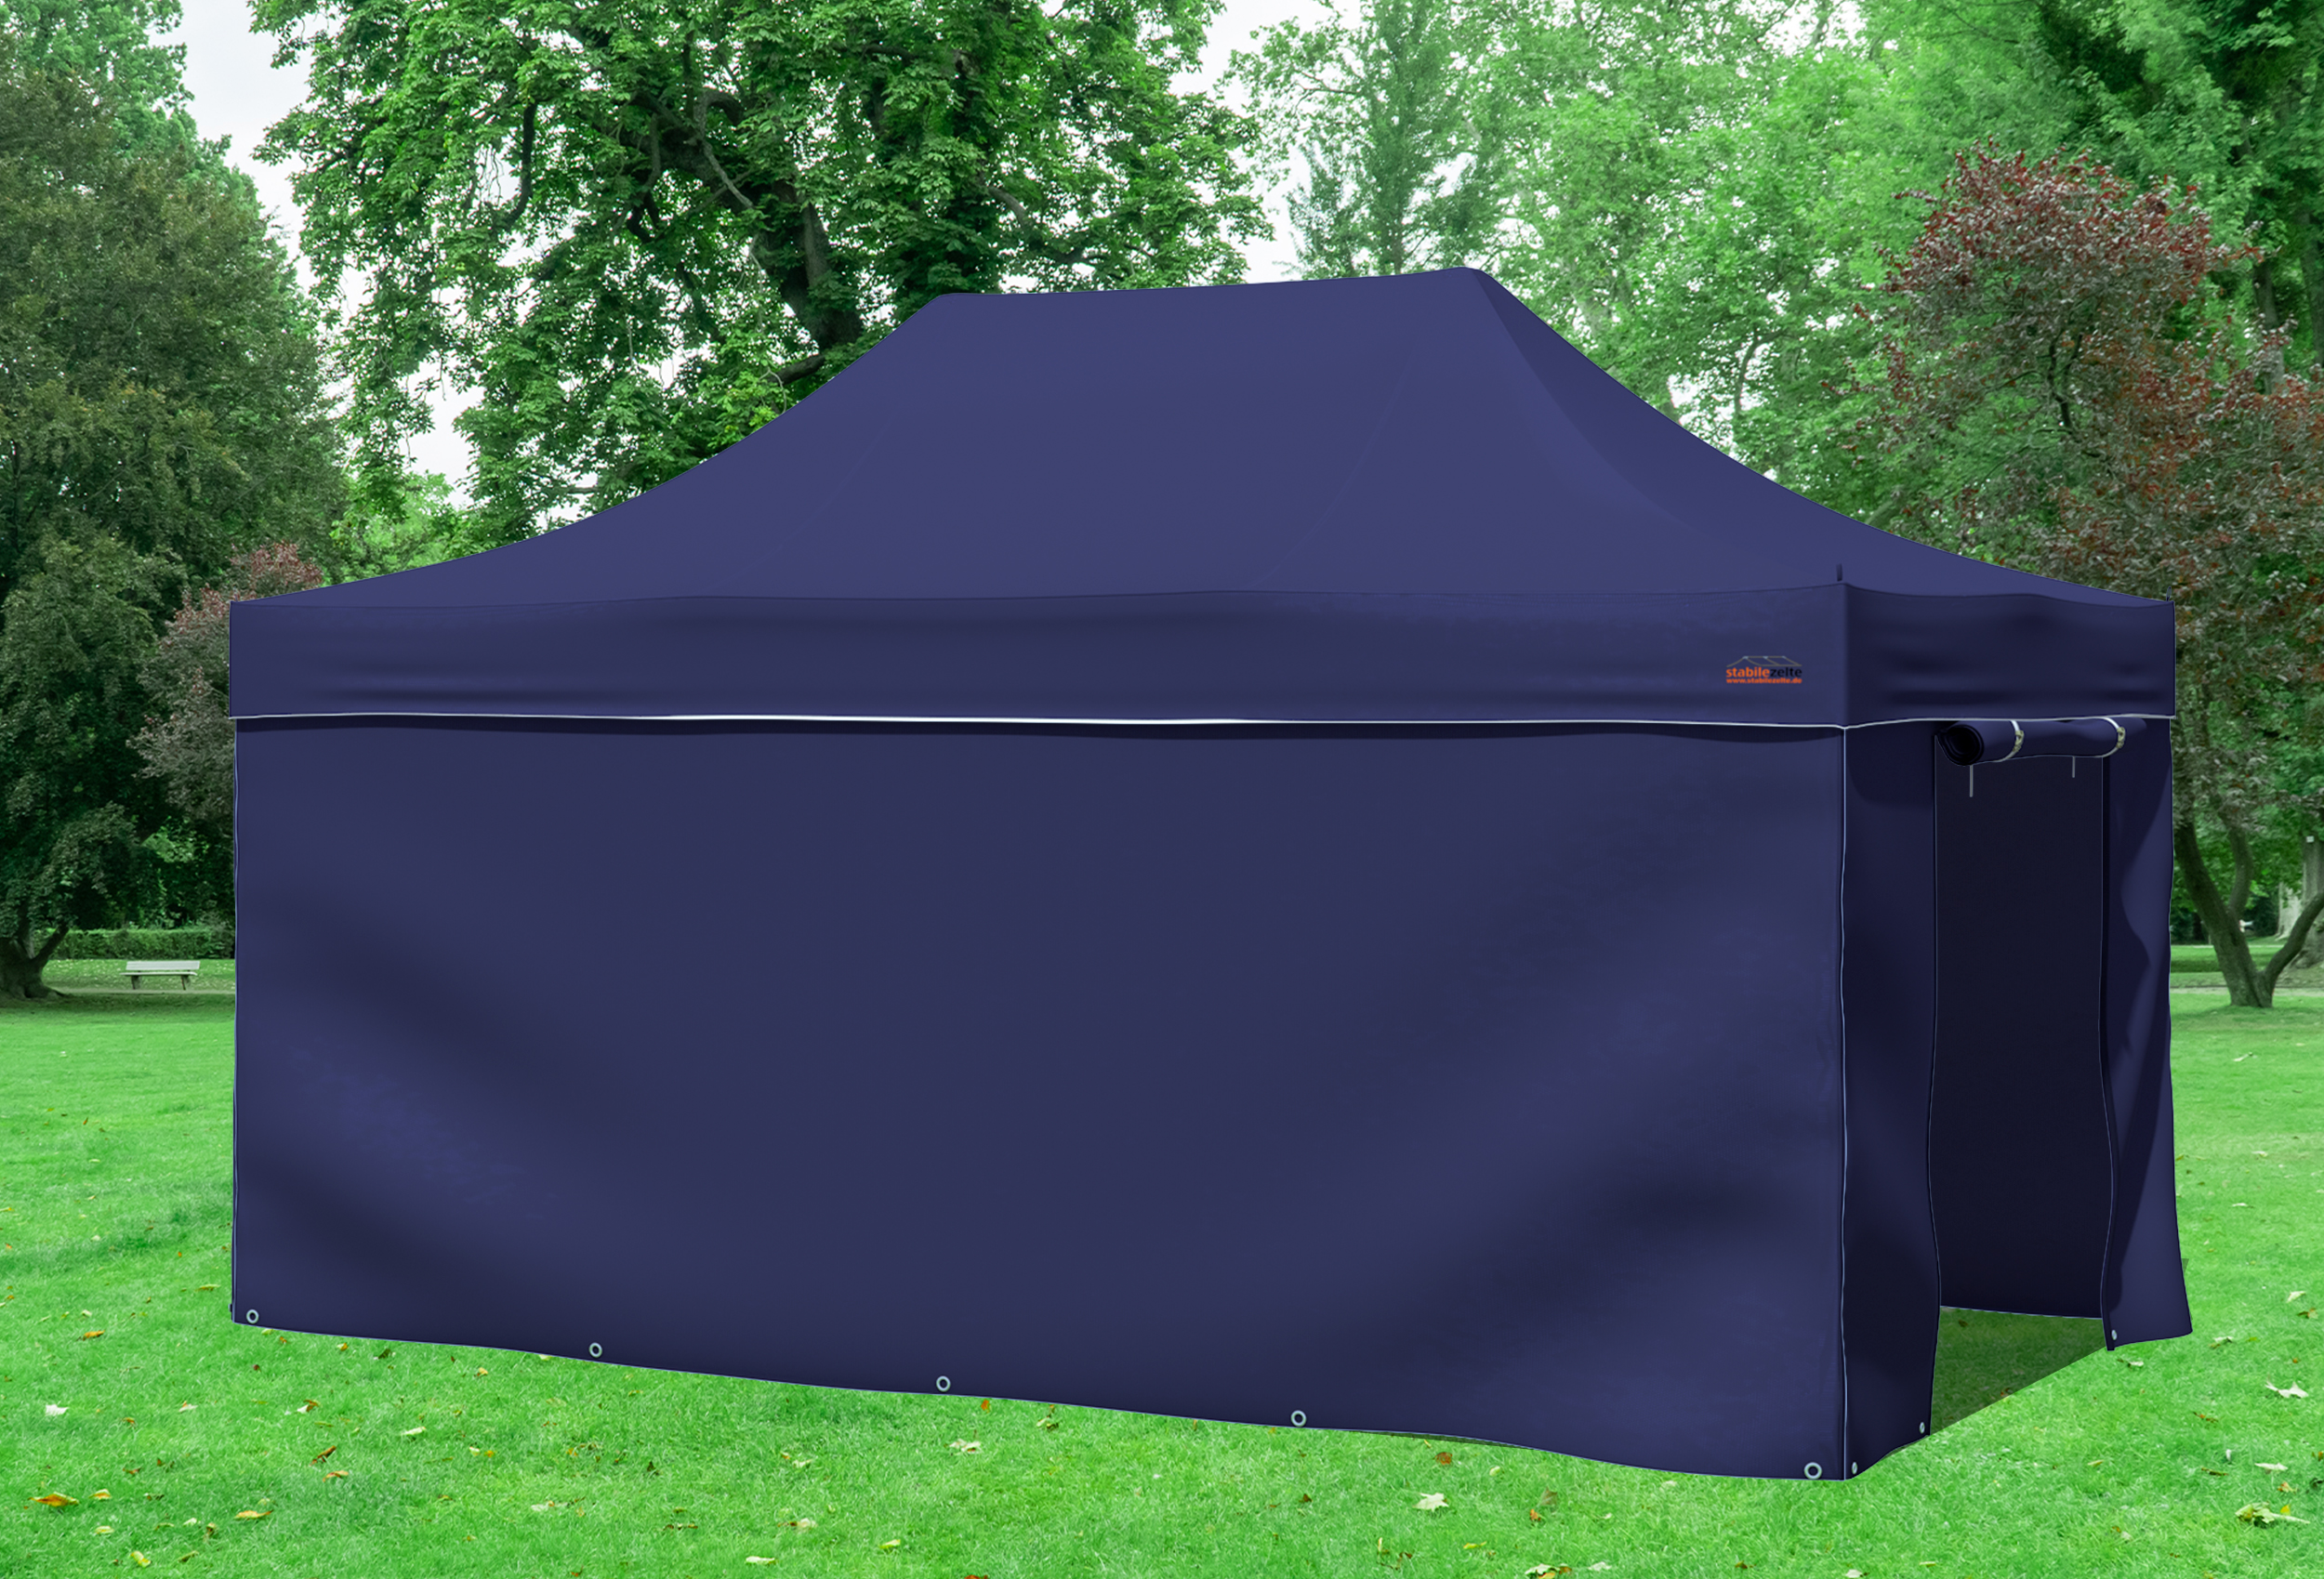 3x4 5 m faltpavillon blau professional serie faltpavillons. Black Bedroom Furniture Sets. Home Design Ideas